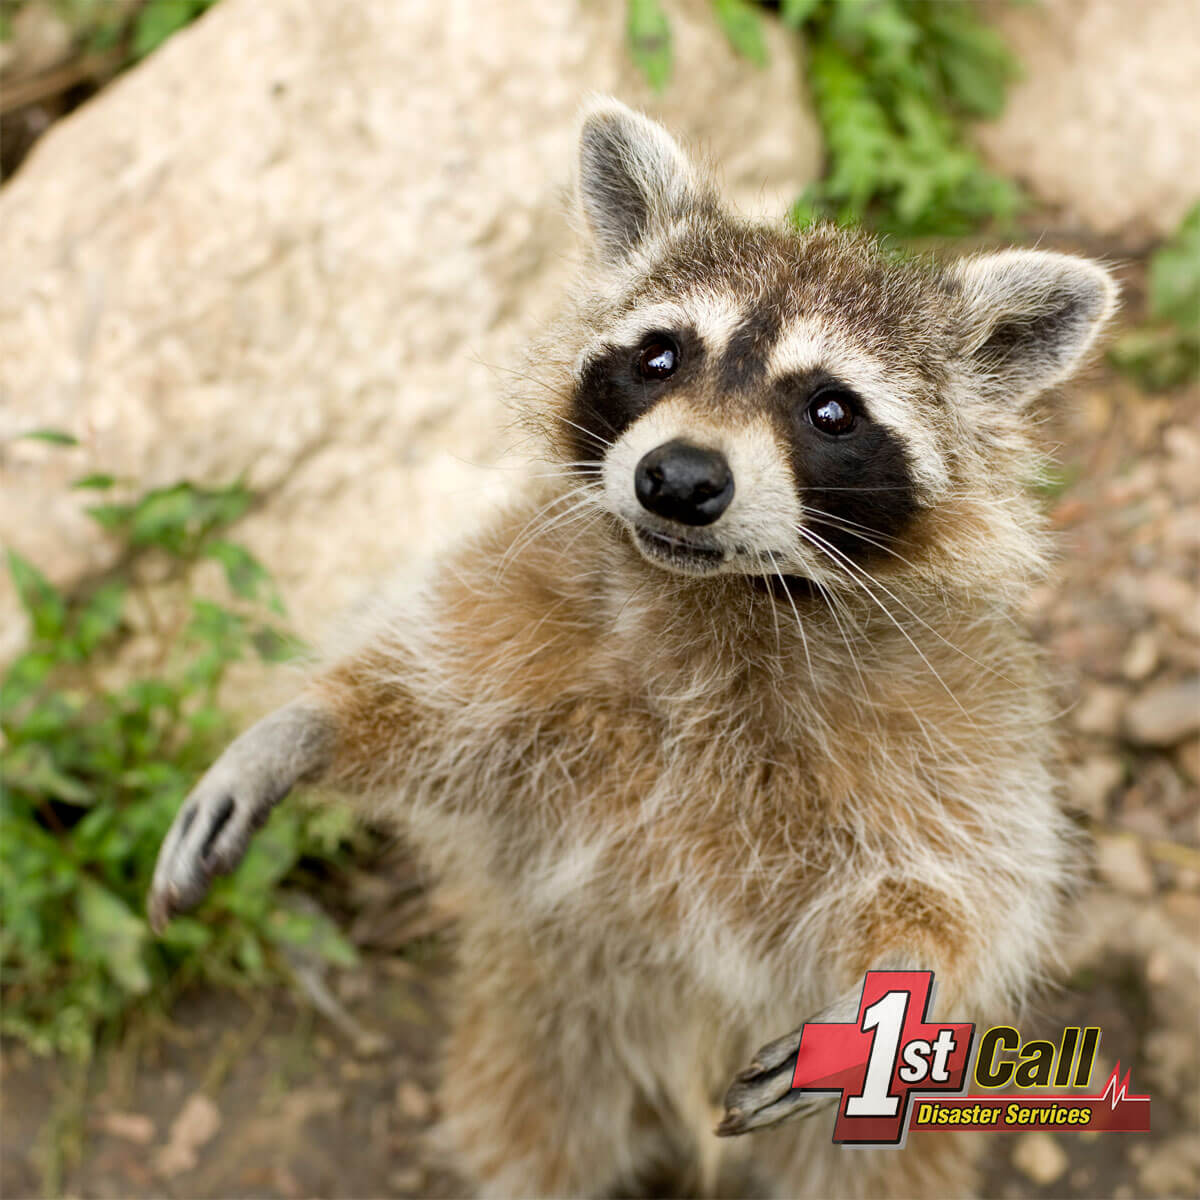 Raccoon Damage Cleanup in Cincinnati Area